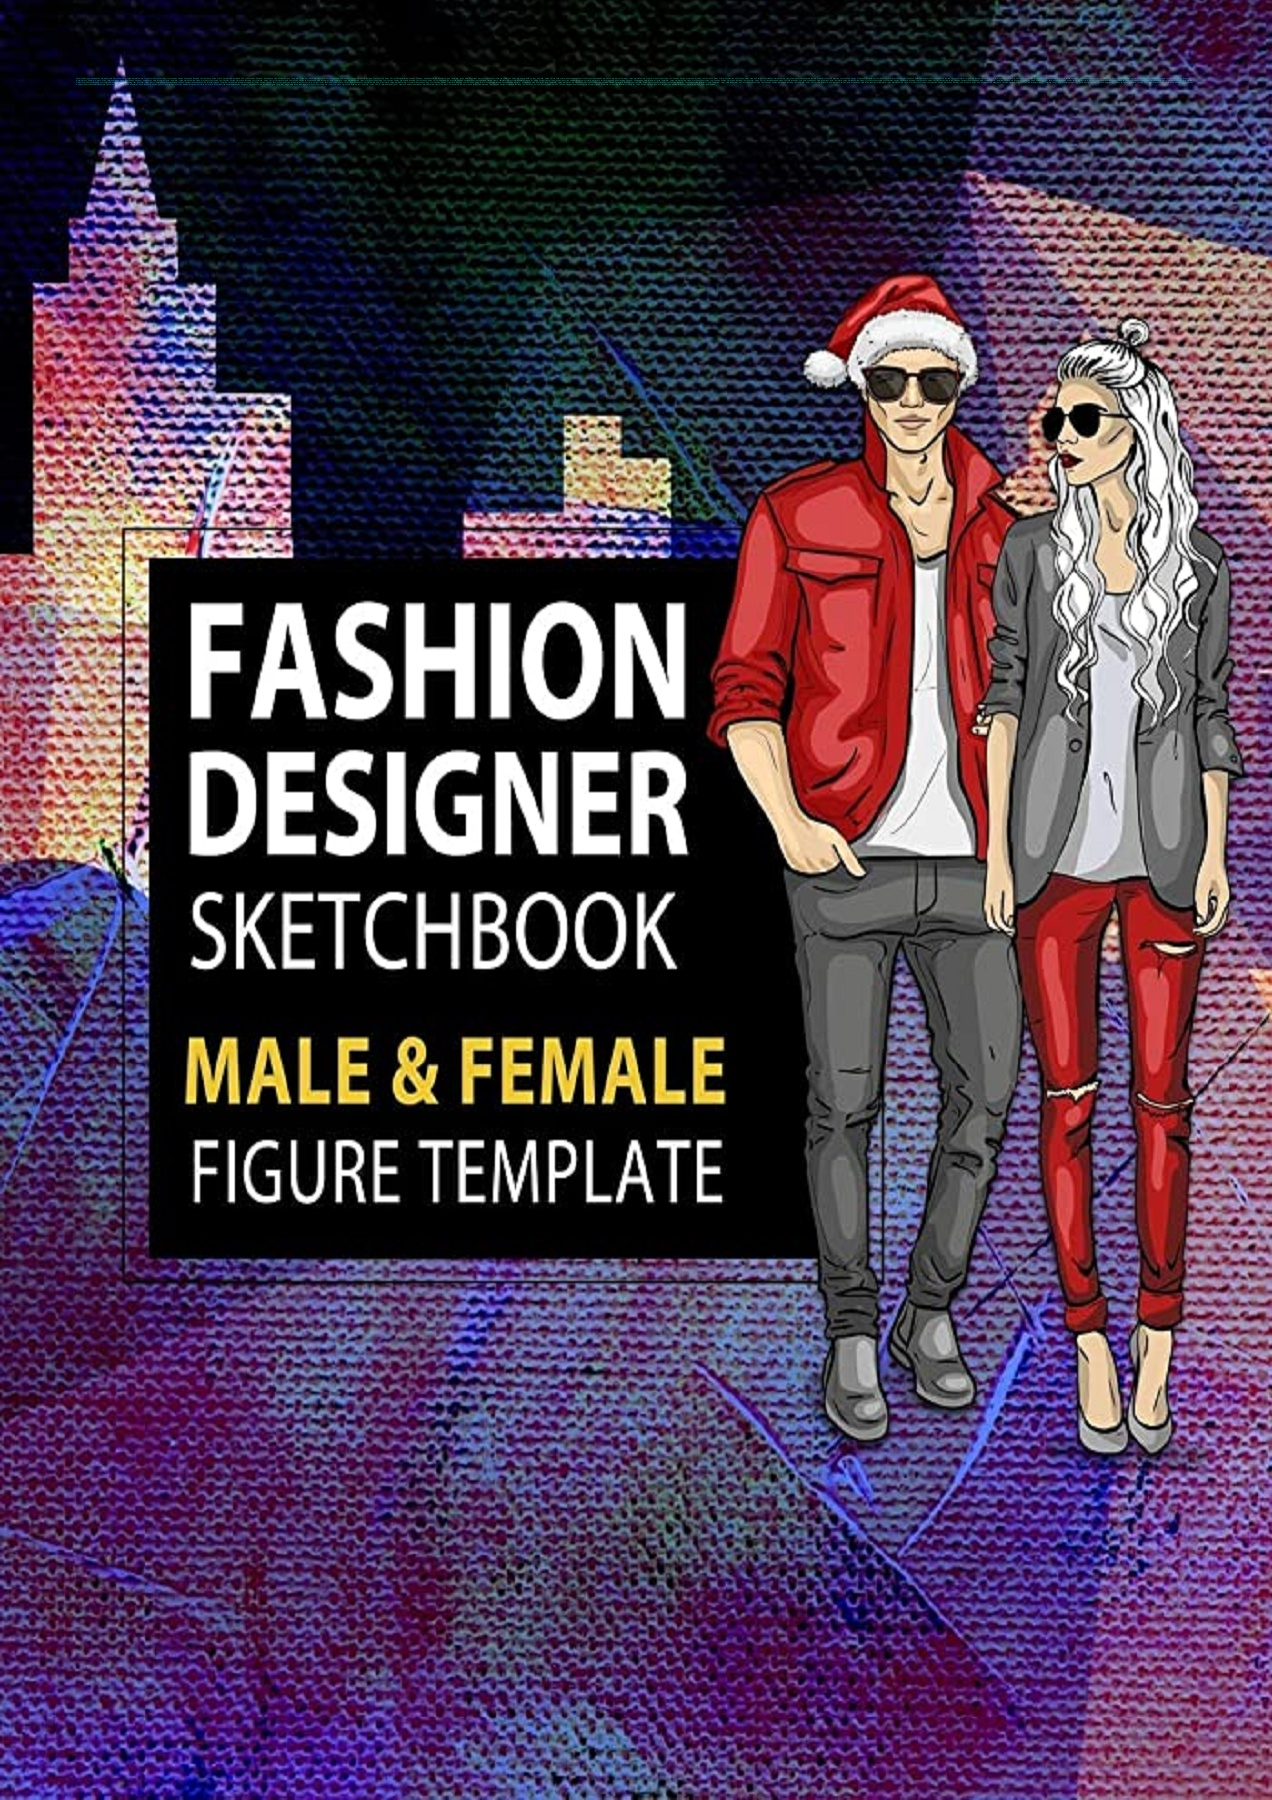 E Book Pdf Fashion Designer Sketchbook Male Female Figure Template Large Male Female Croquis For Easily Sketching Your Fashion Design Styles And Building Your Portfolio Xmas Gift For Fashionista Full Pages